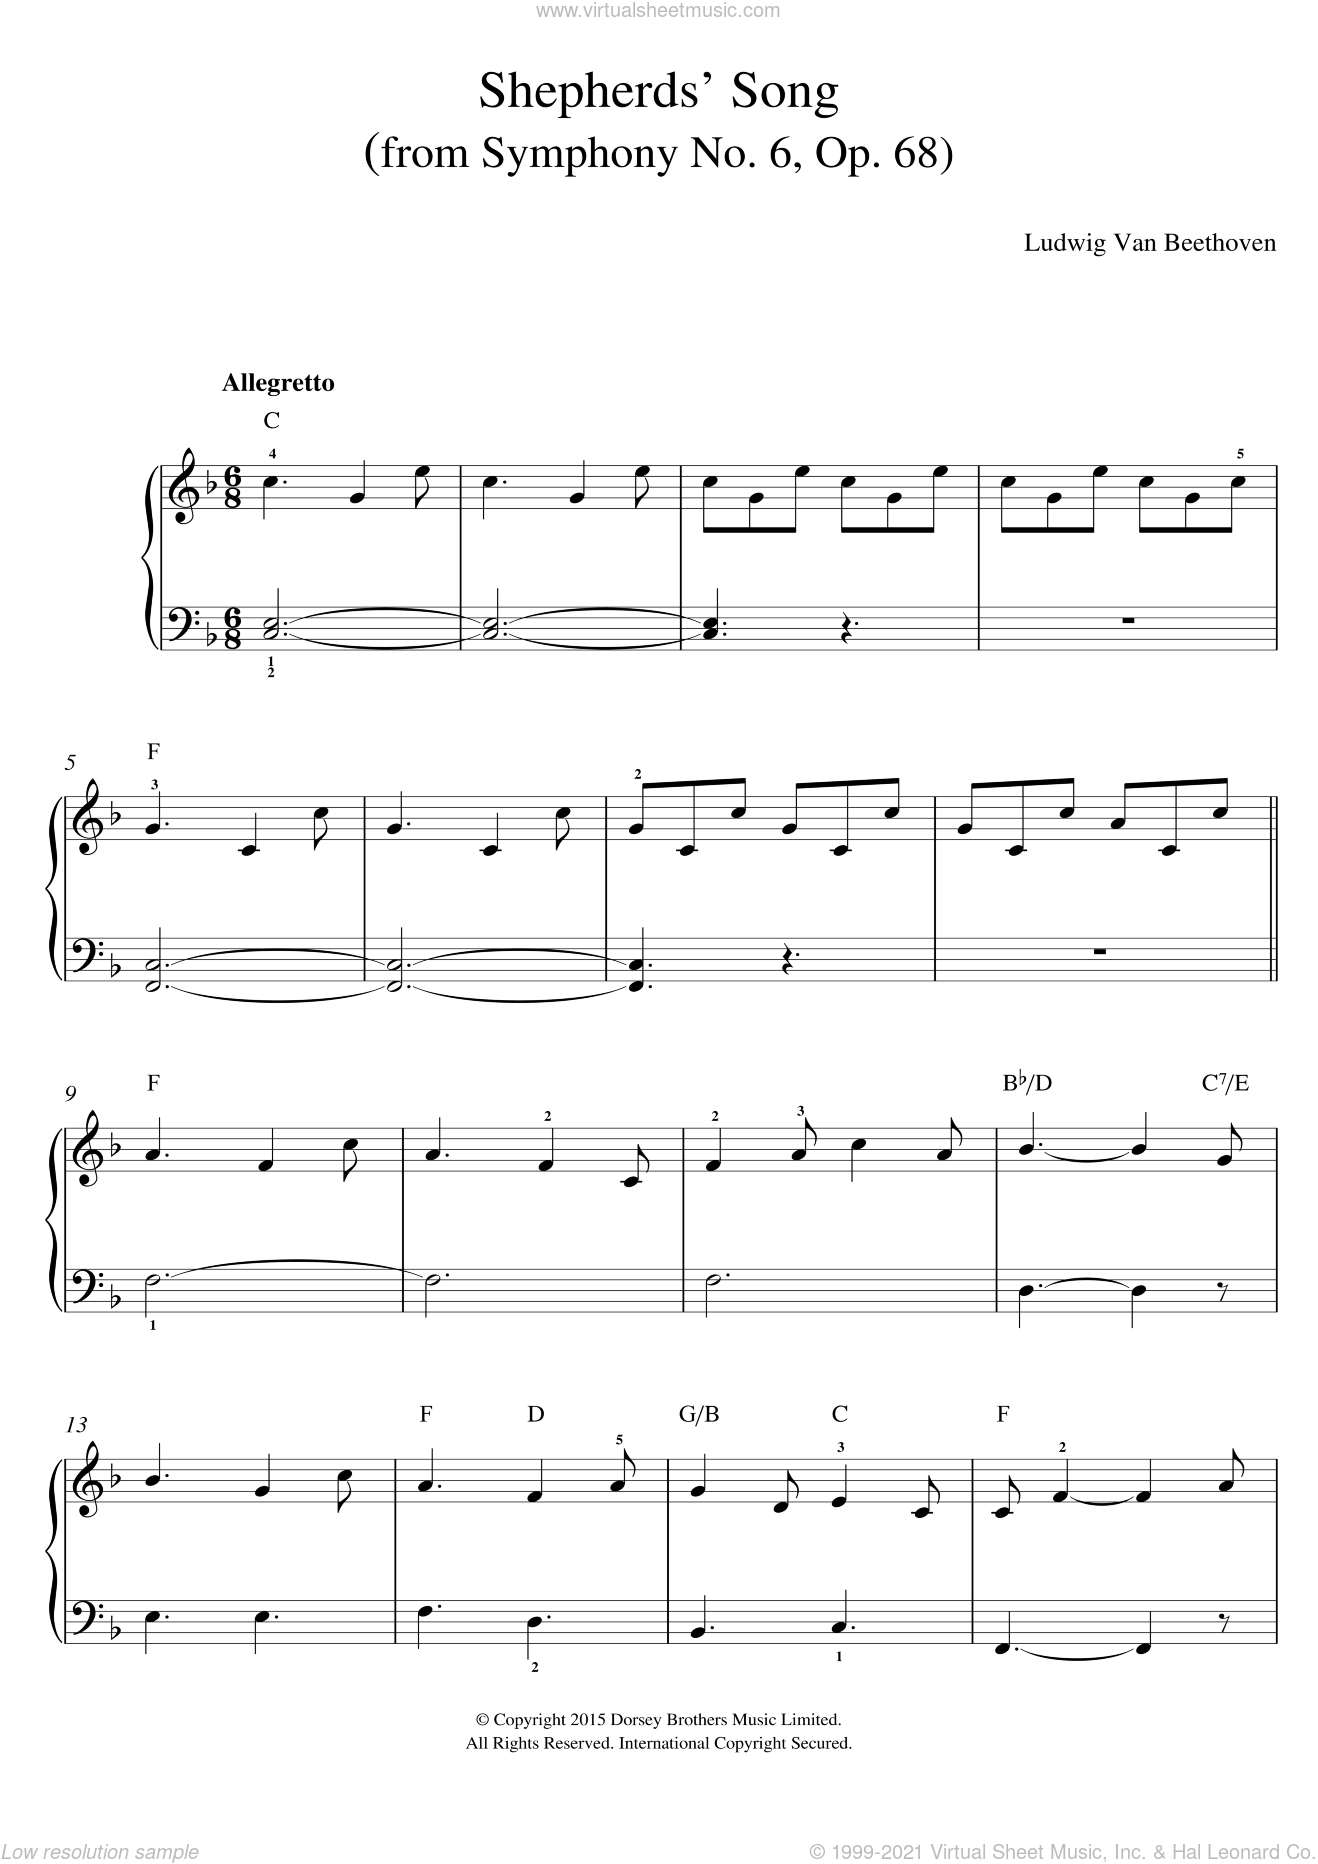 Shepherds' Song (from Symphony No. 6, Op. 68) sheet music for voice, piano or guitar by Ludwig van Beethoven, classical score, intermediate skill level